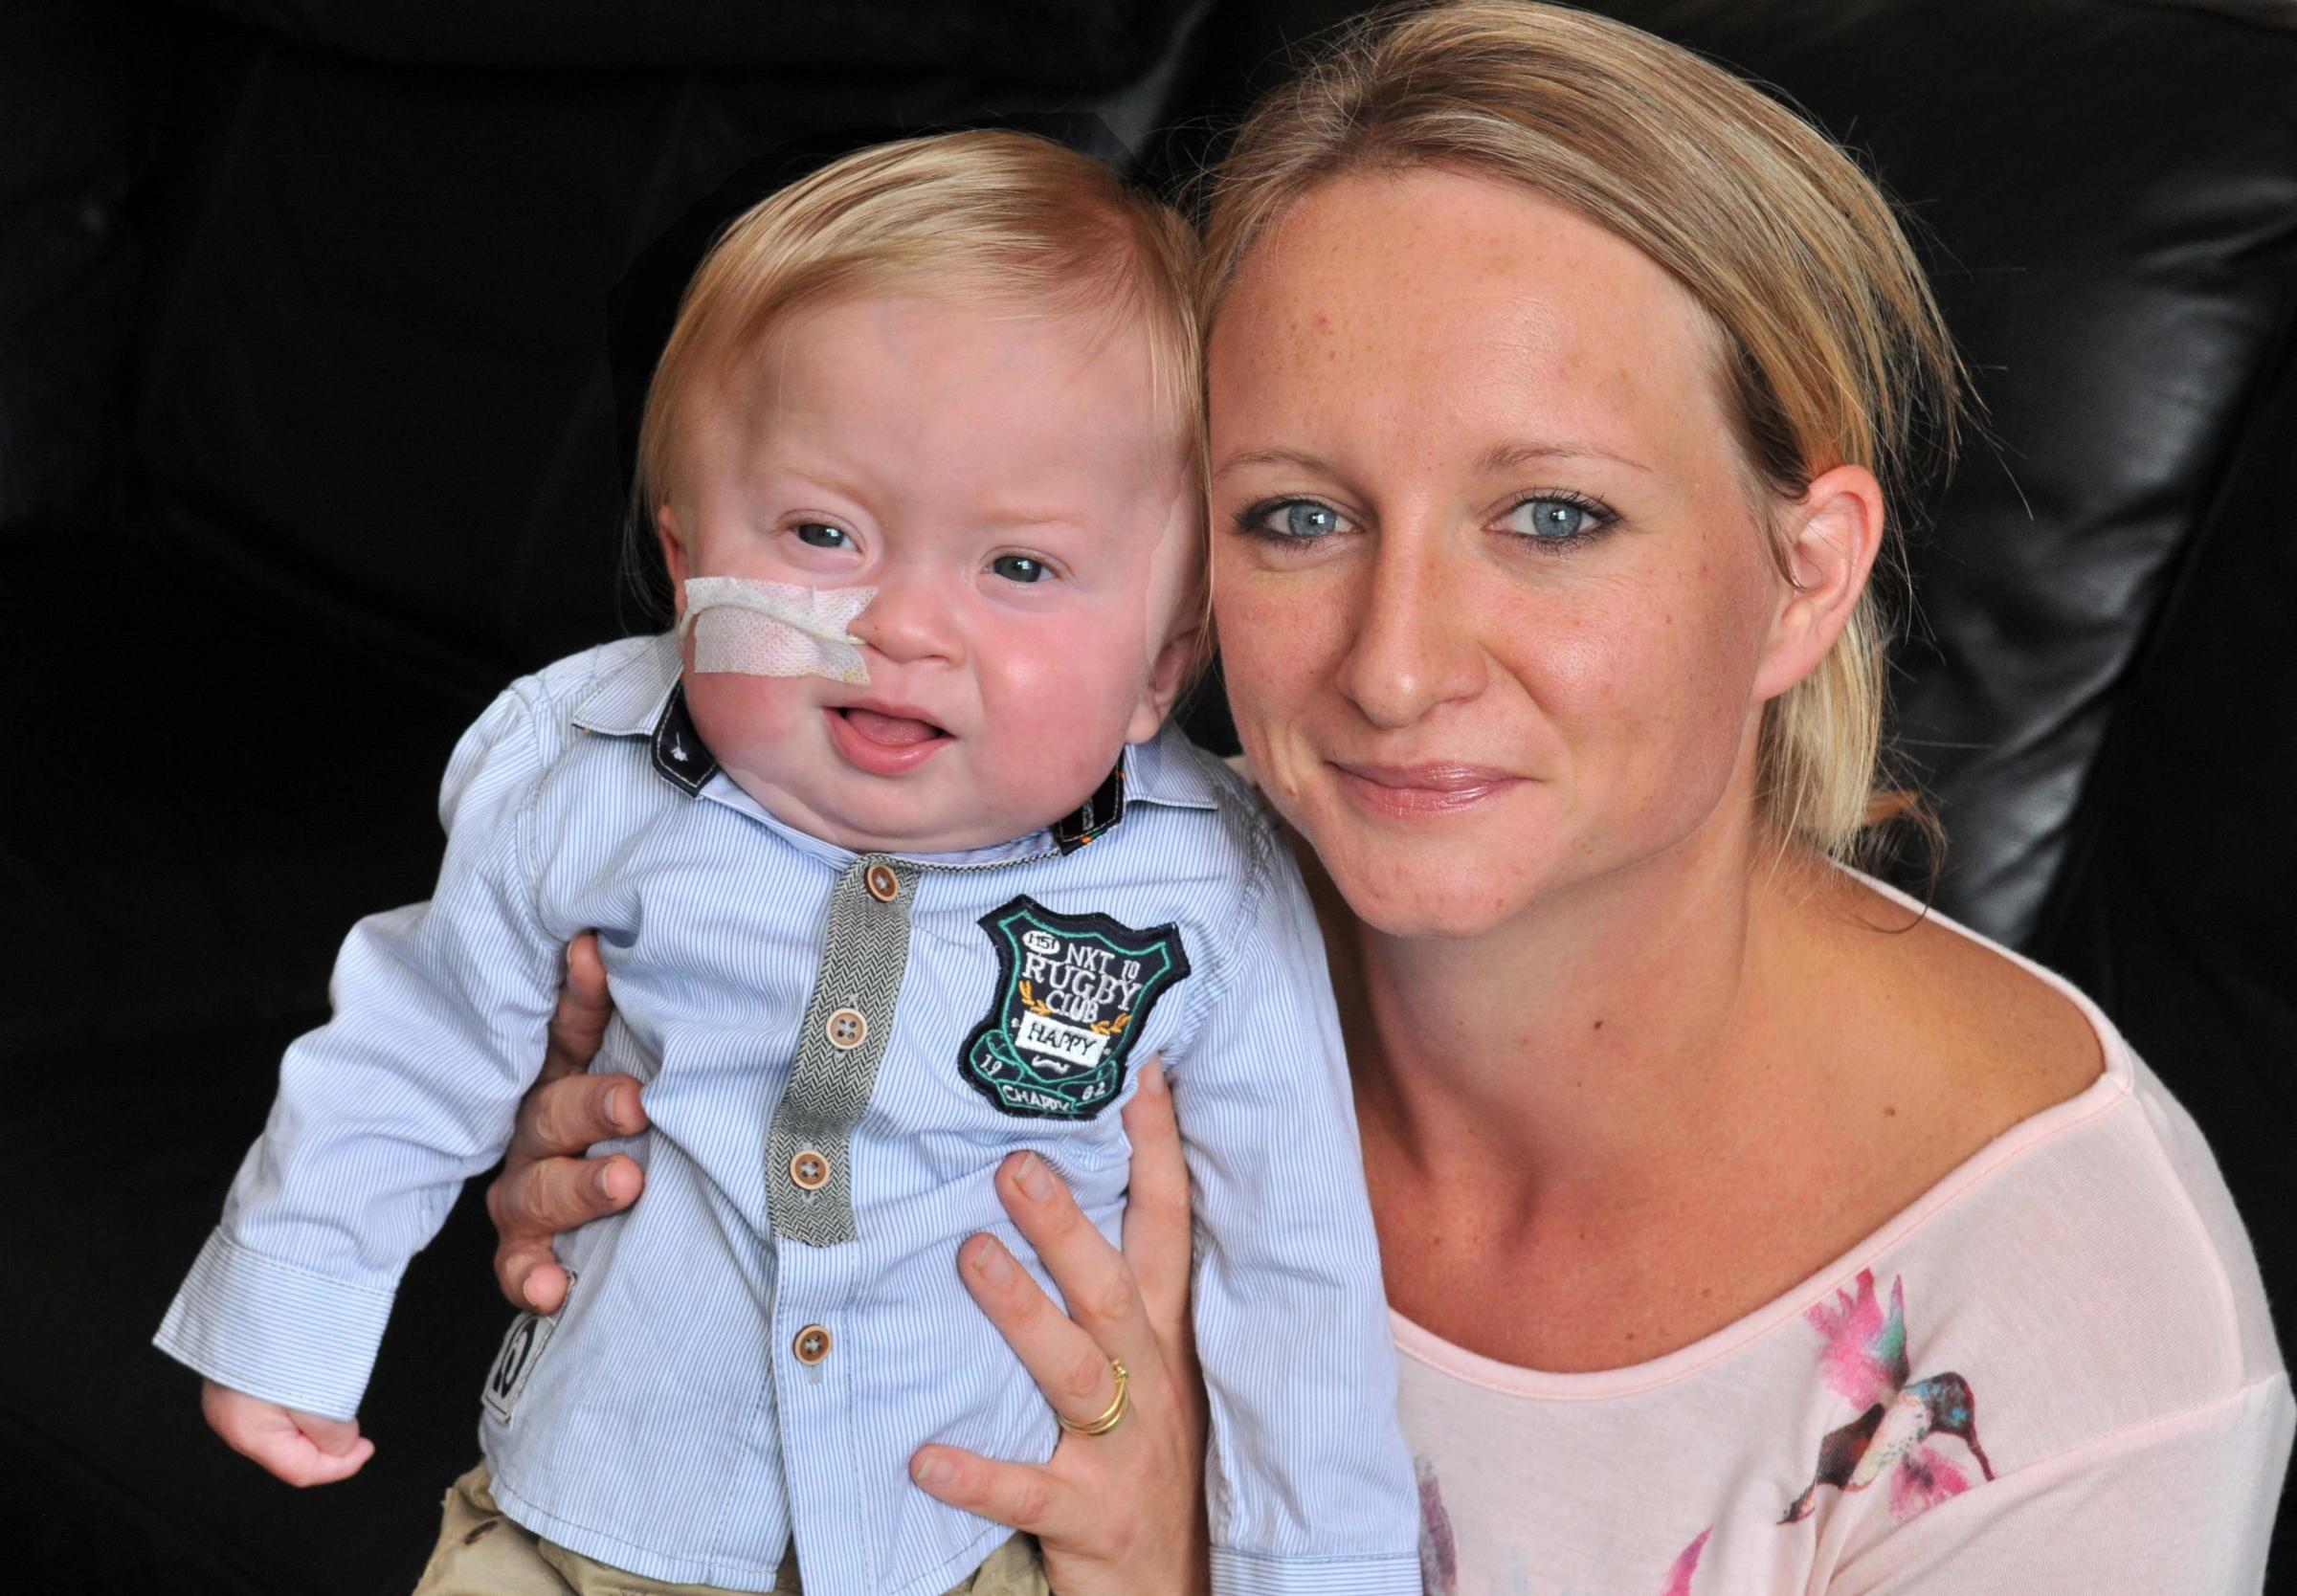 Mother's heartbreak after finding her baby has rare incurable condition